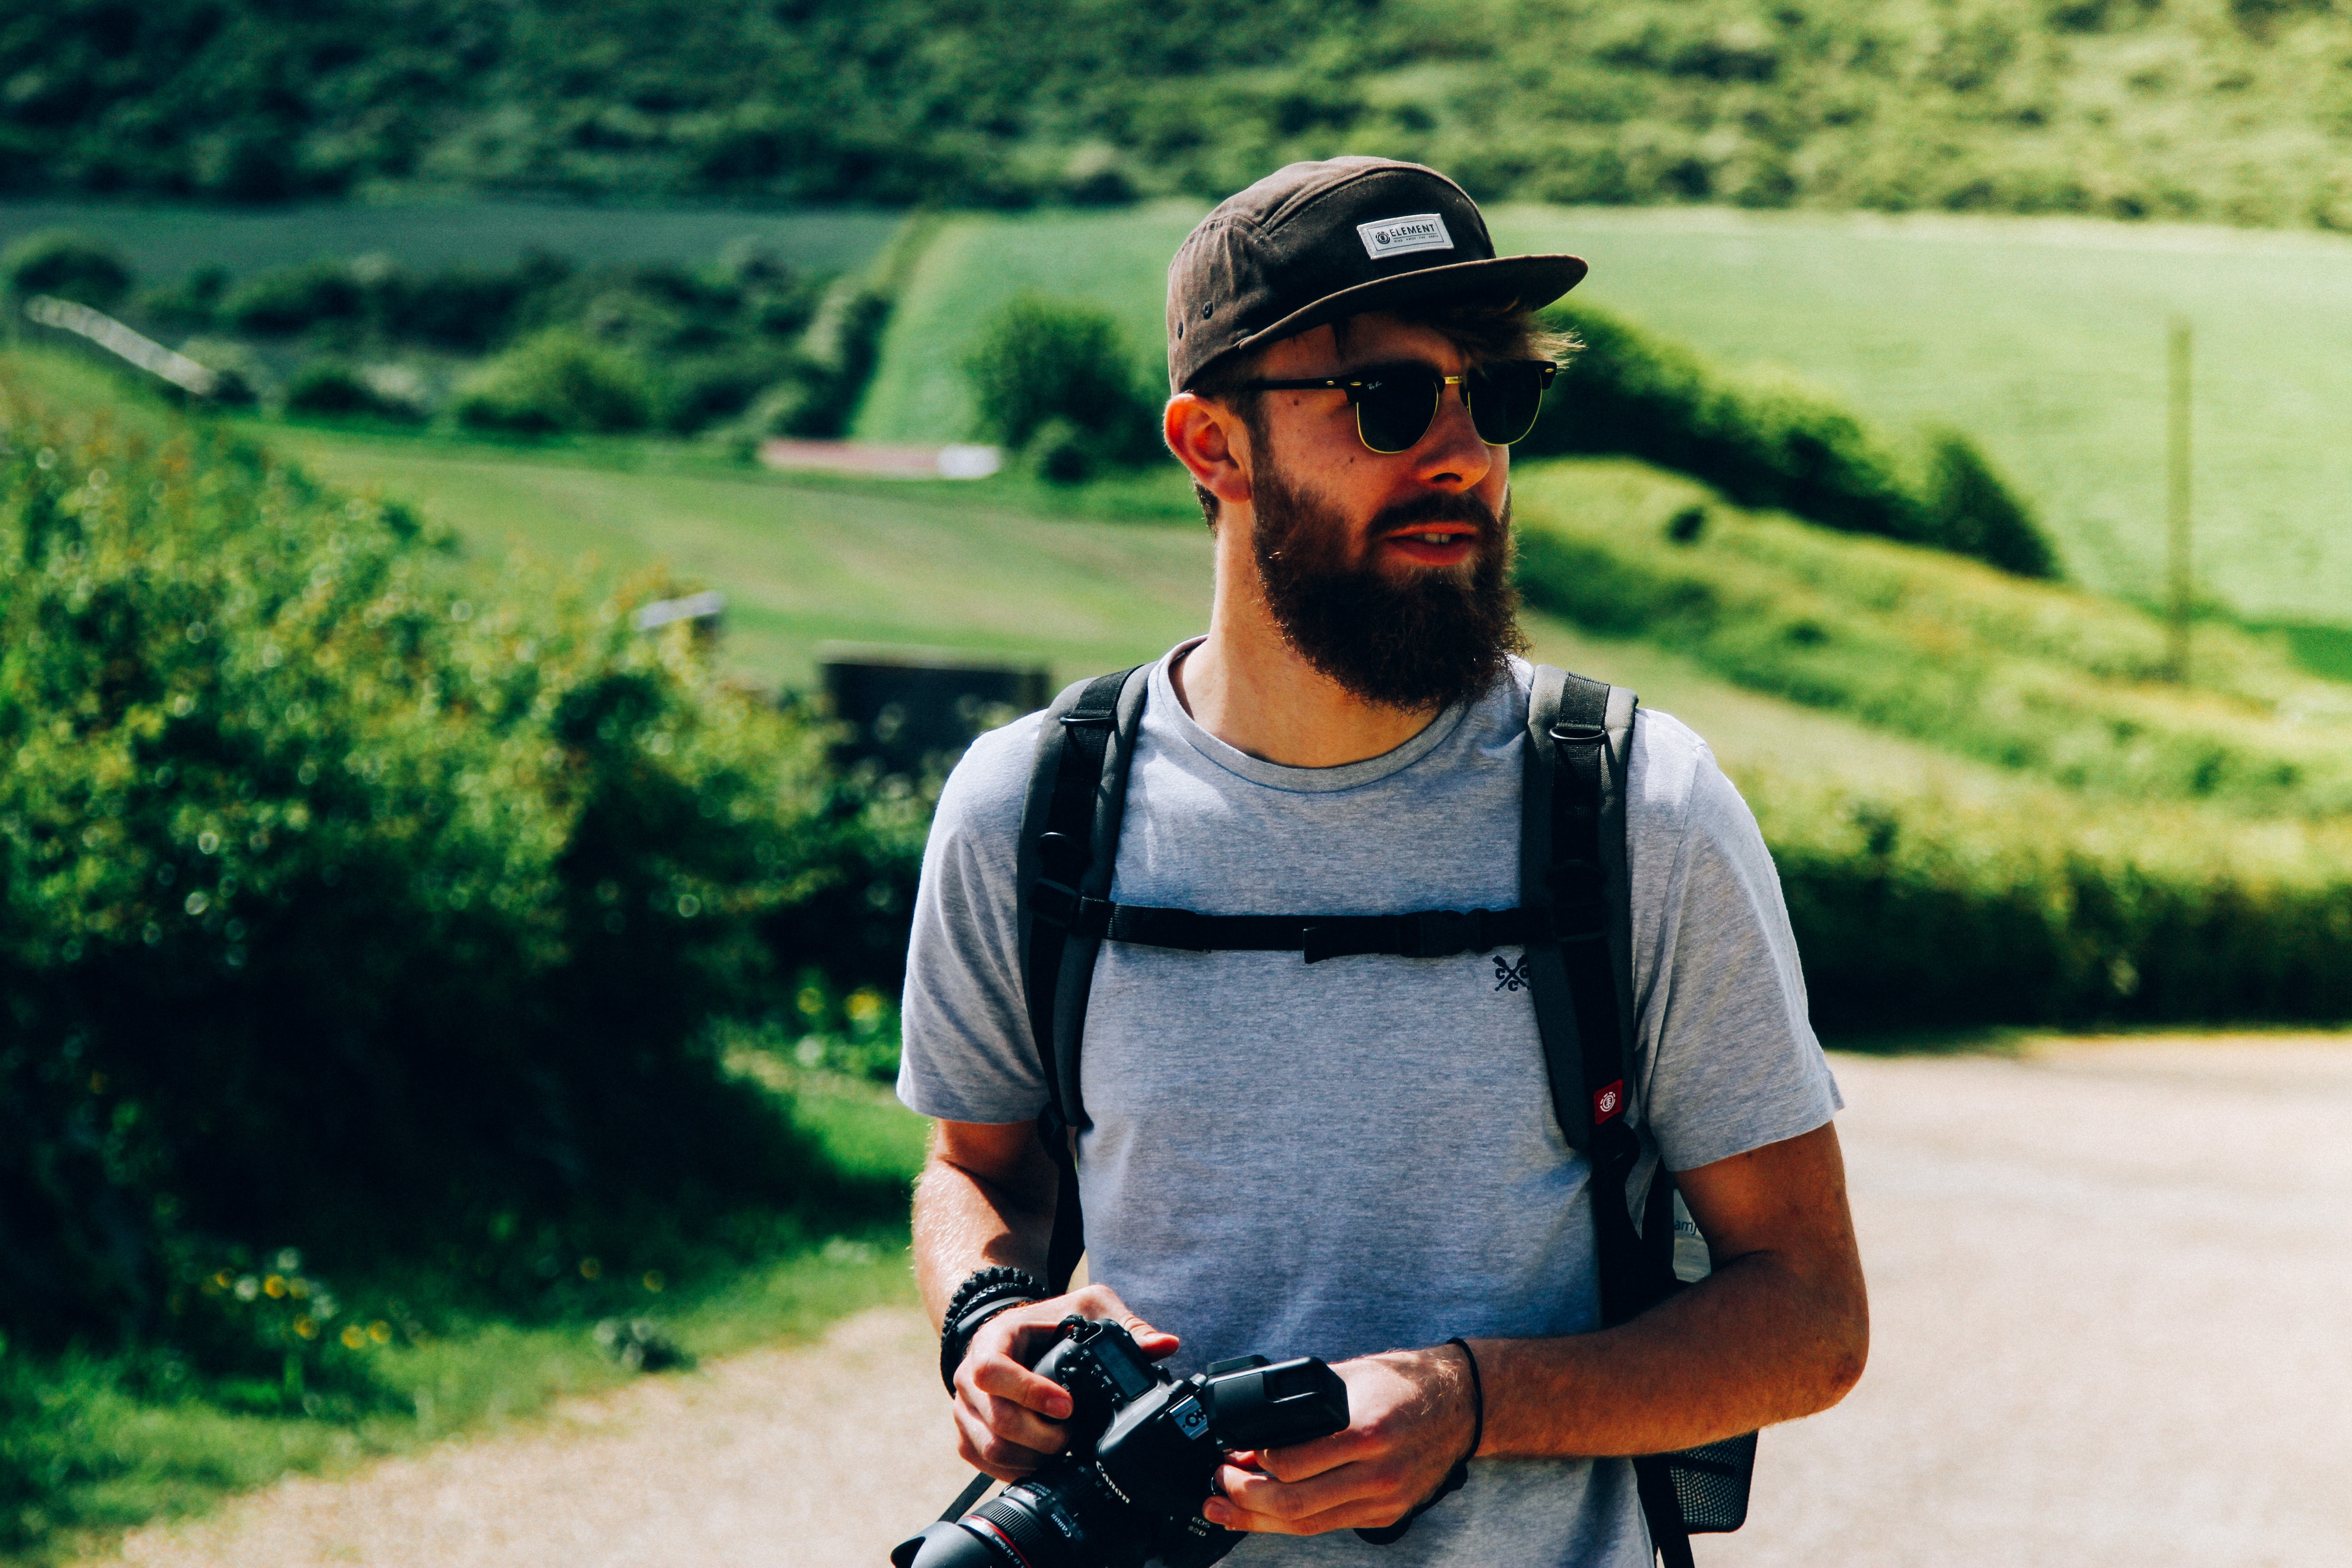 A bearded man wearing a backpack holds a camera outdoors in the Isle of Wight